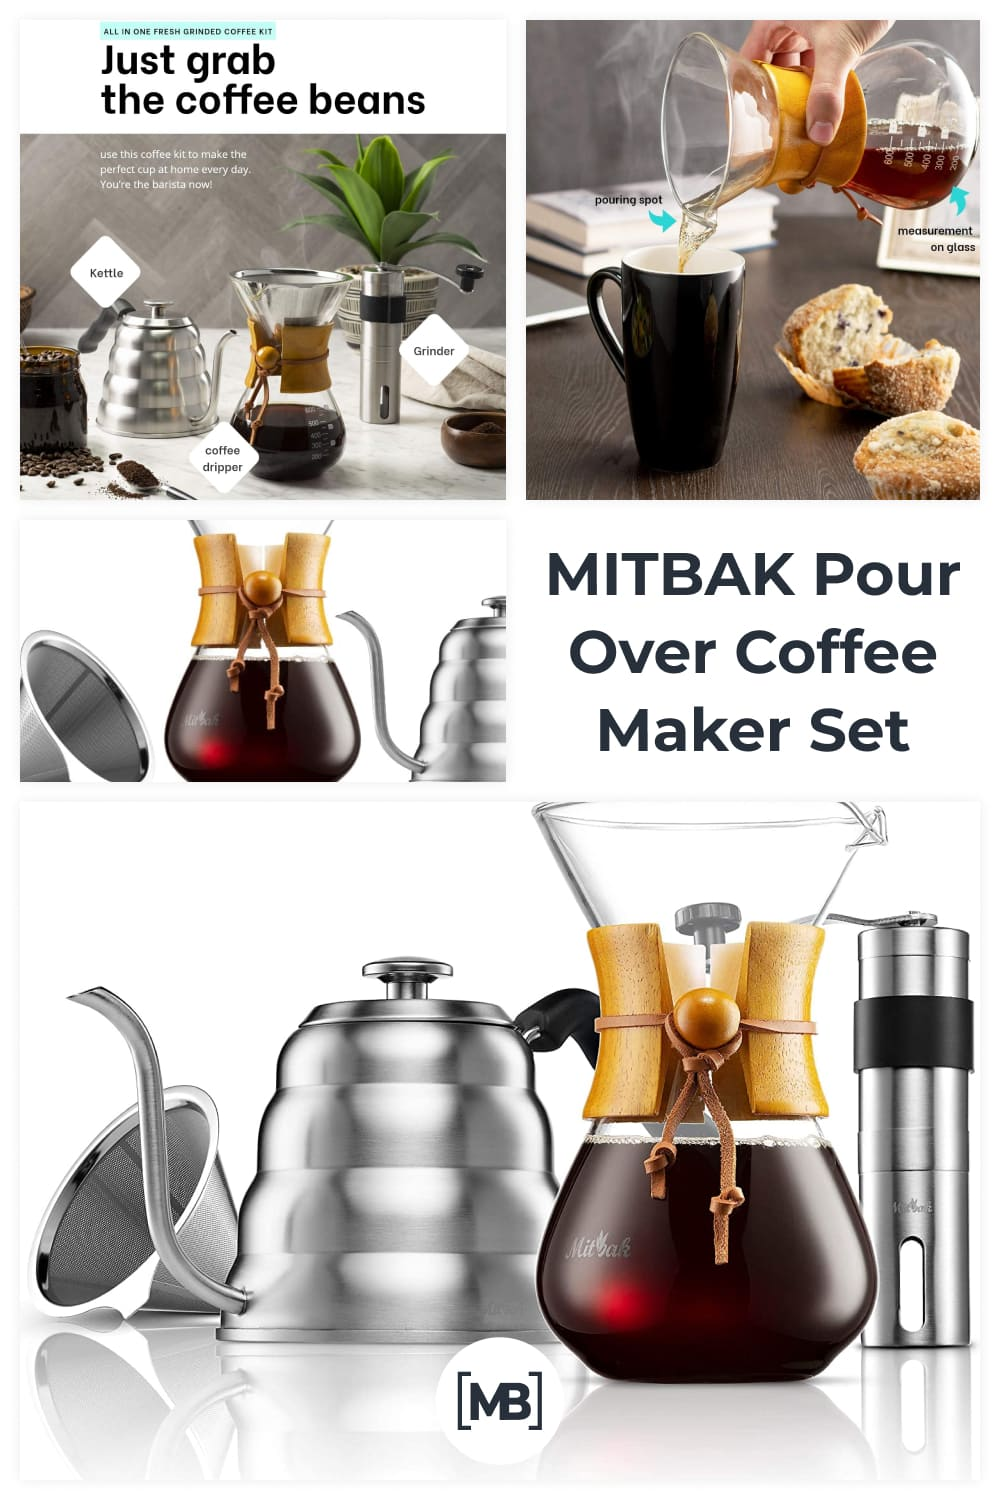 Just wait until you taste the difference when you make a cup of joe with this coffee brewer set.